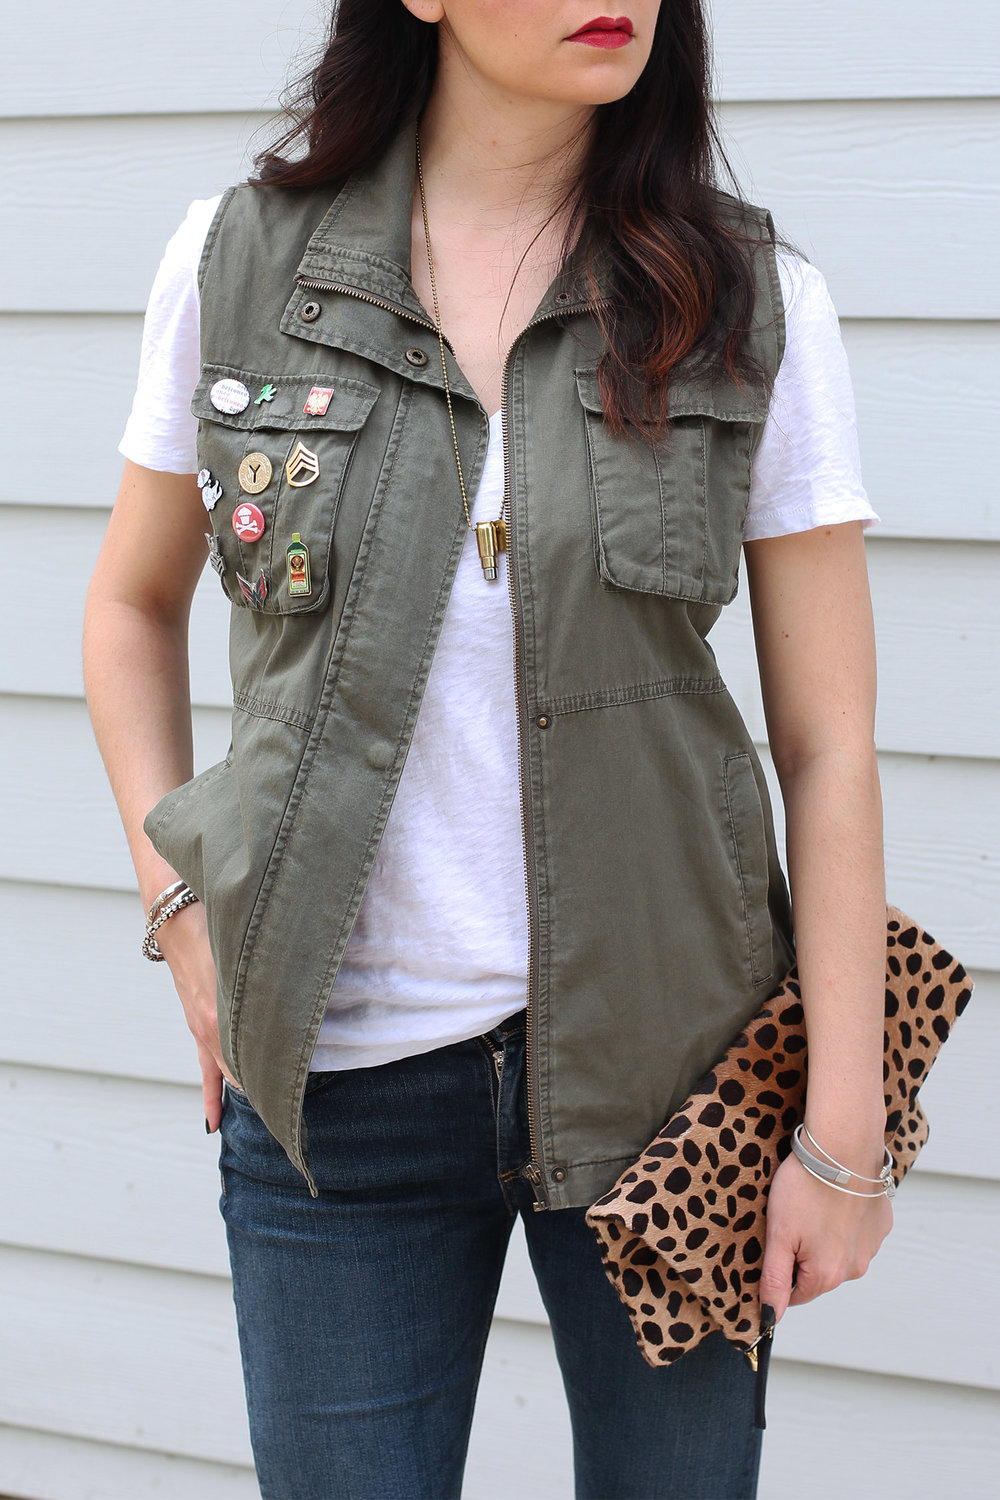 Olive green vest outfit